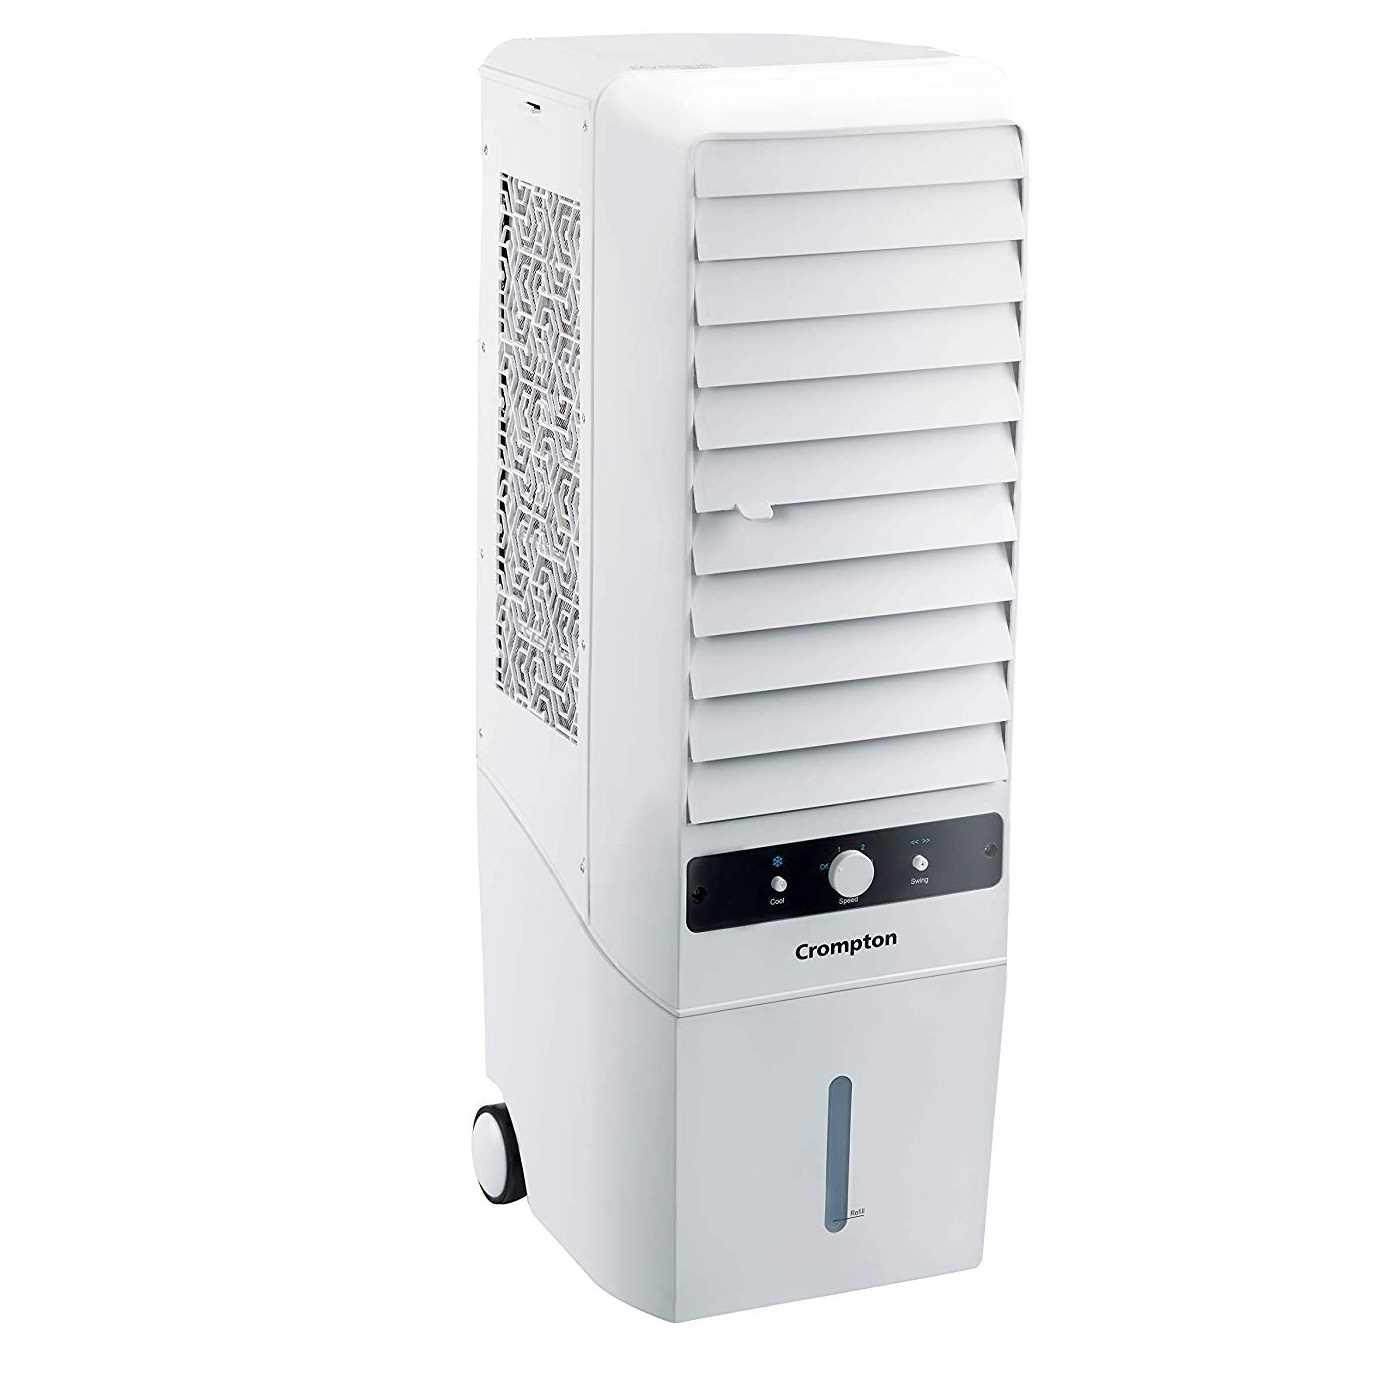 Crompton Mystique Turbo 22 Litre Tower Air Cooler